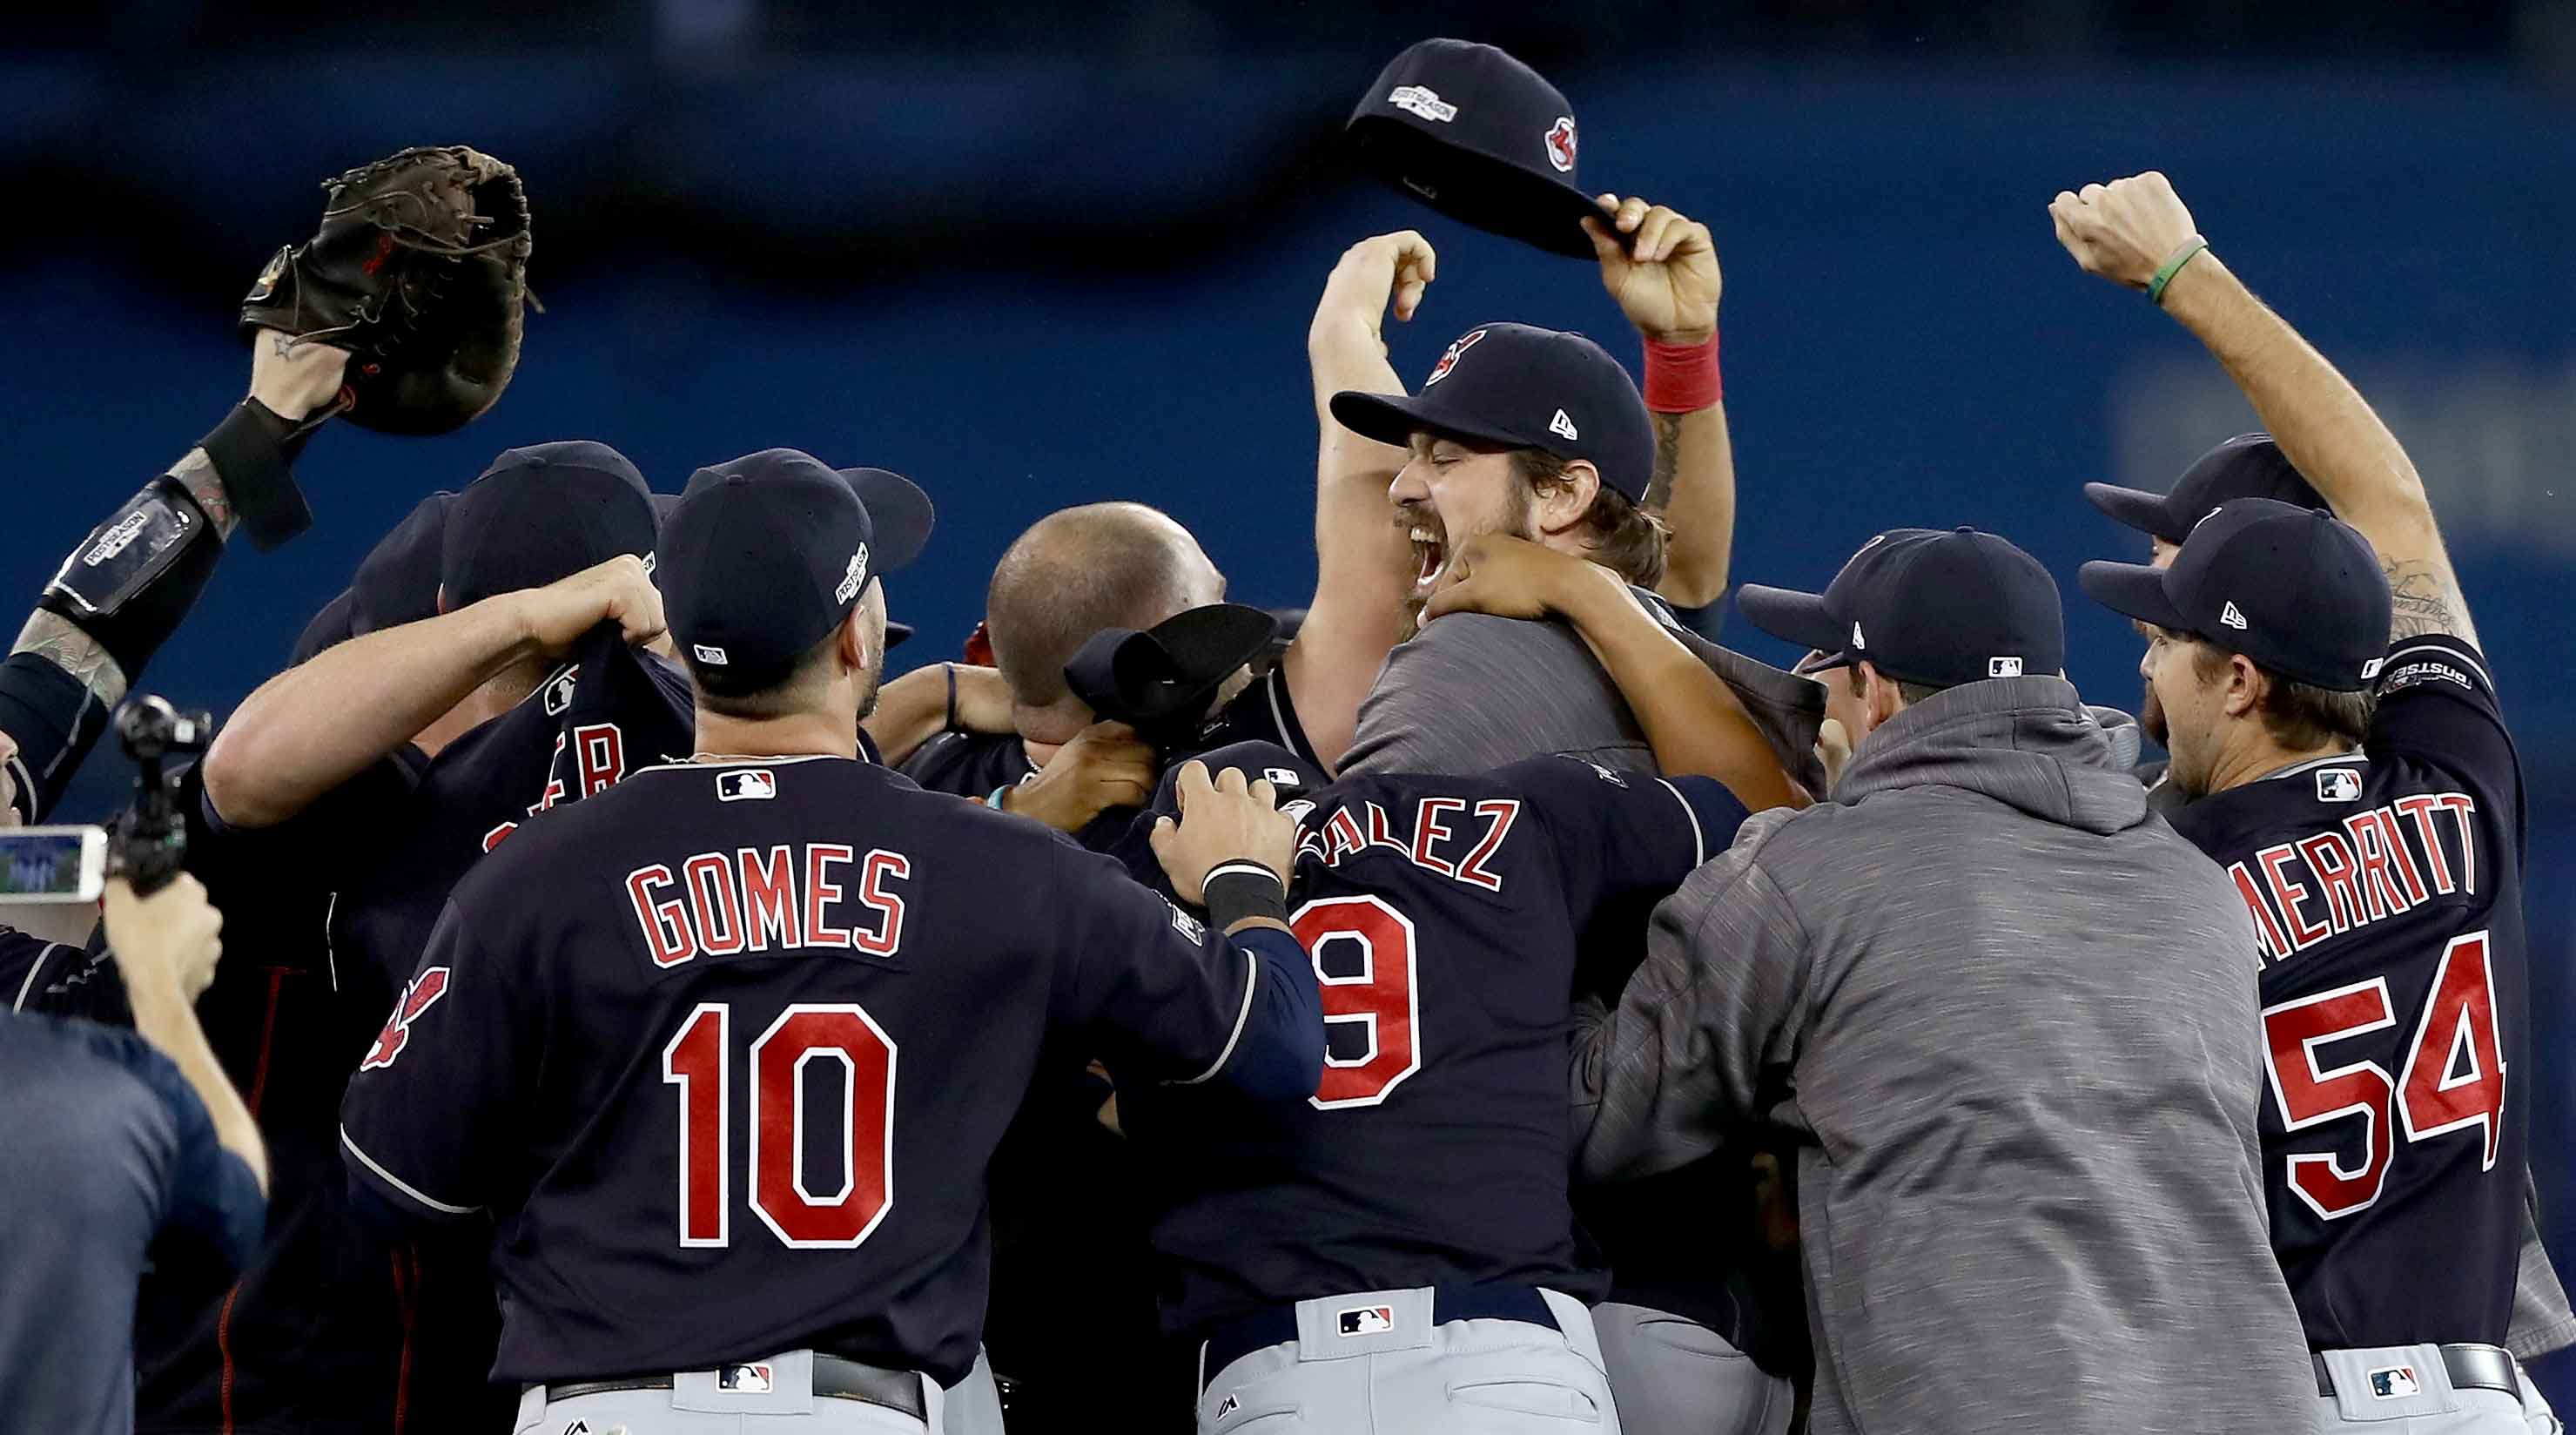 Images of Cleveland Indians | 2959x1648